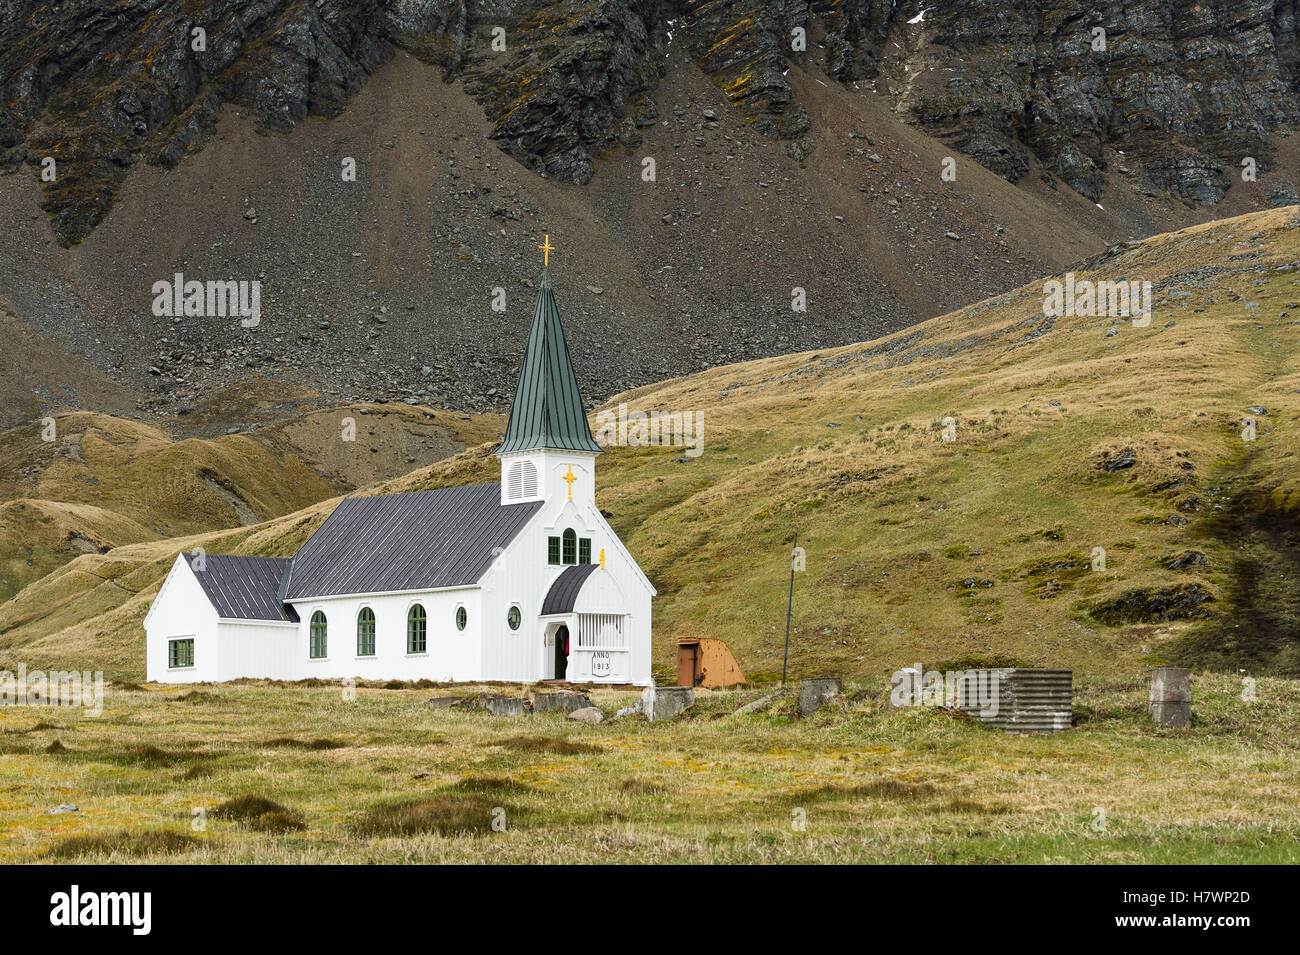 White church building with steeple and cross; Grytviken, South Georgia, South Georgia and the South Sandwich Islands, - Stock Image